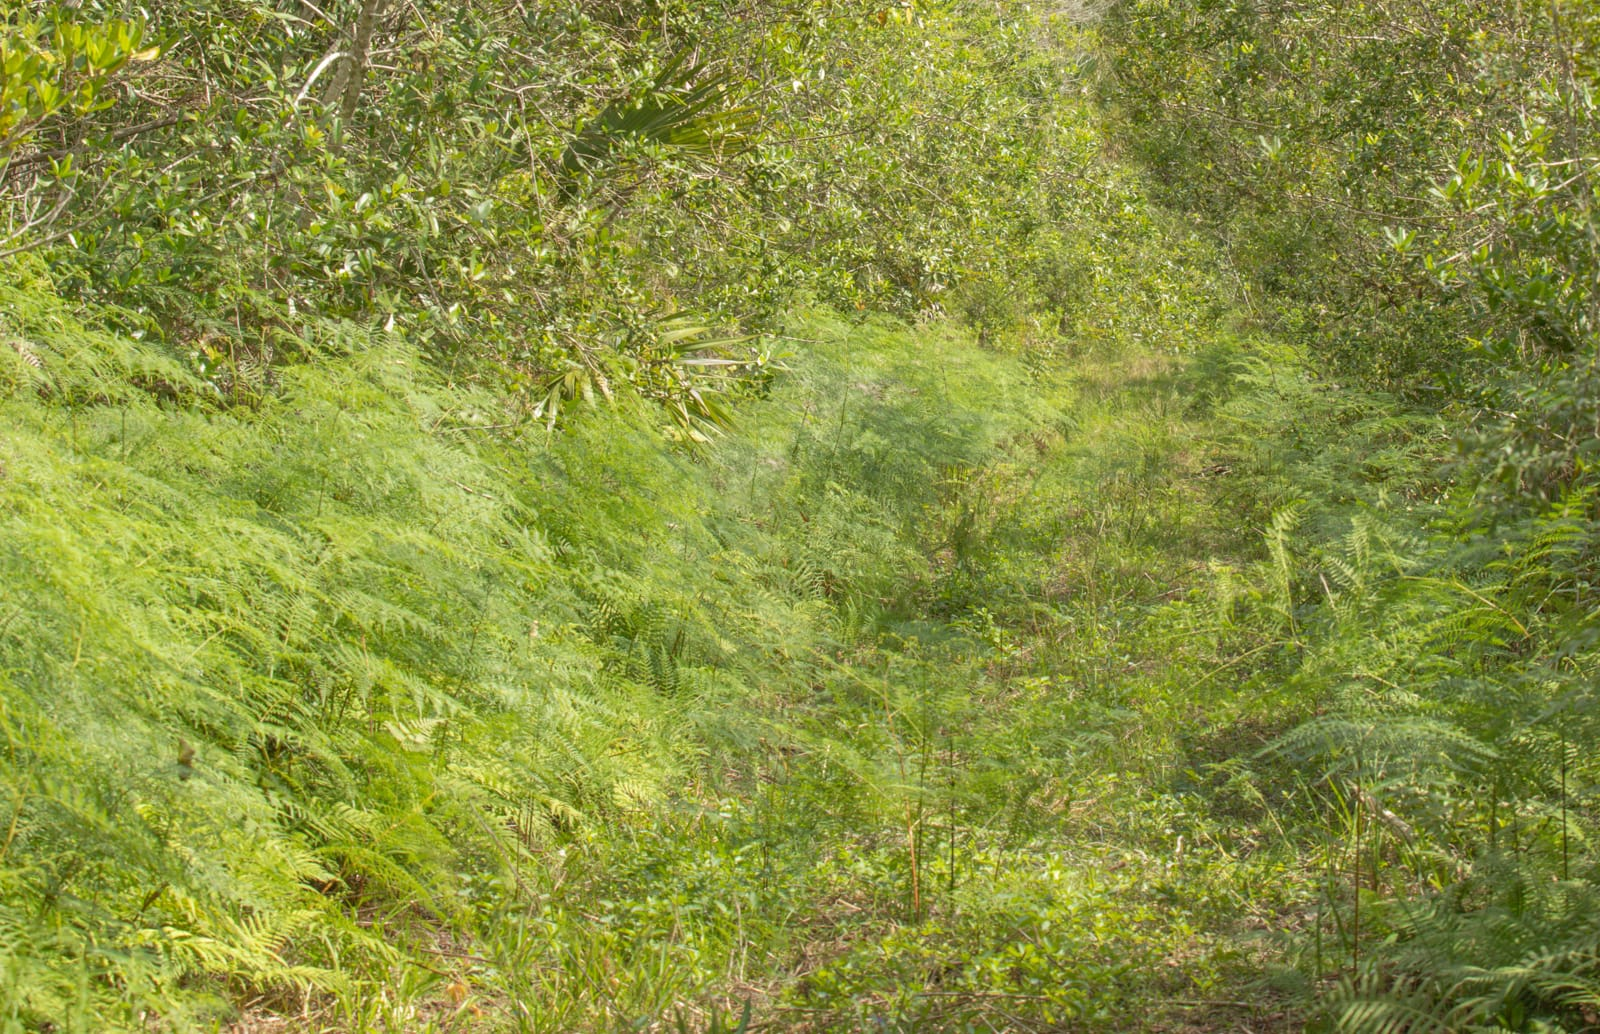 Ferns, trees, and shrubs densely packed together in the Florida Everglades